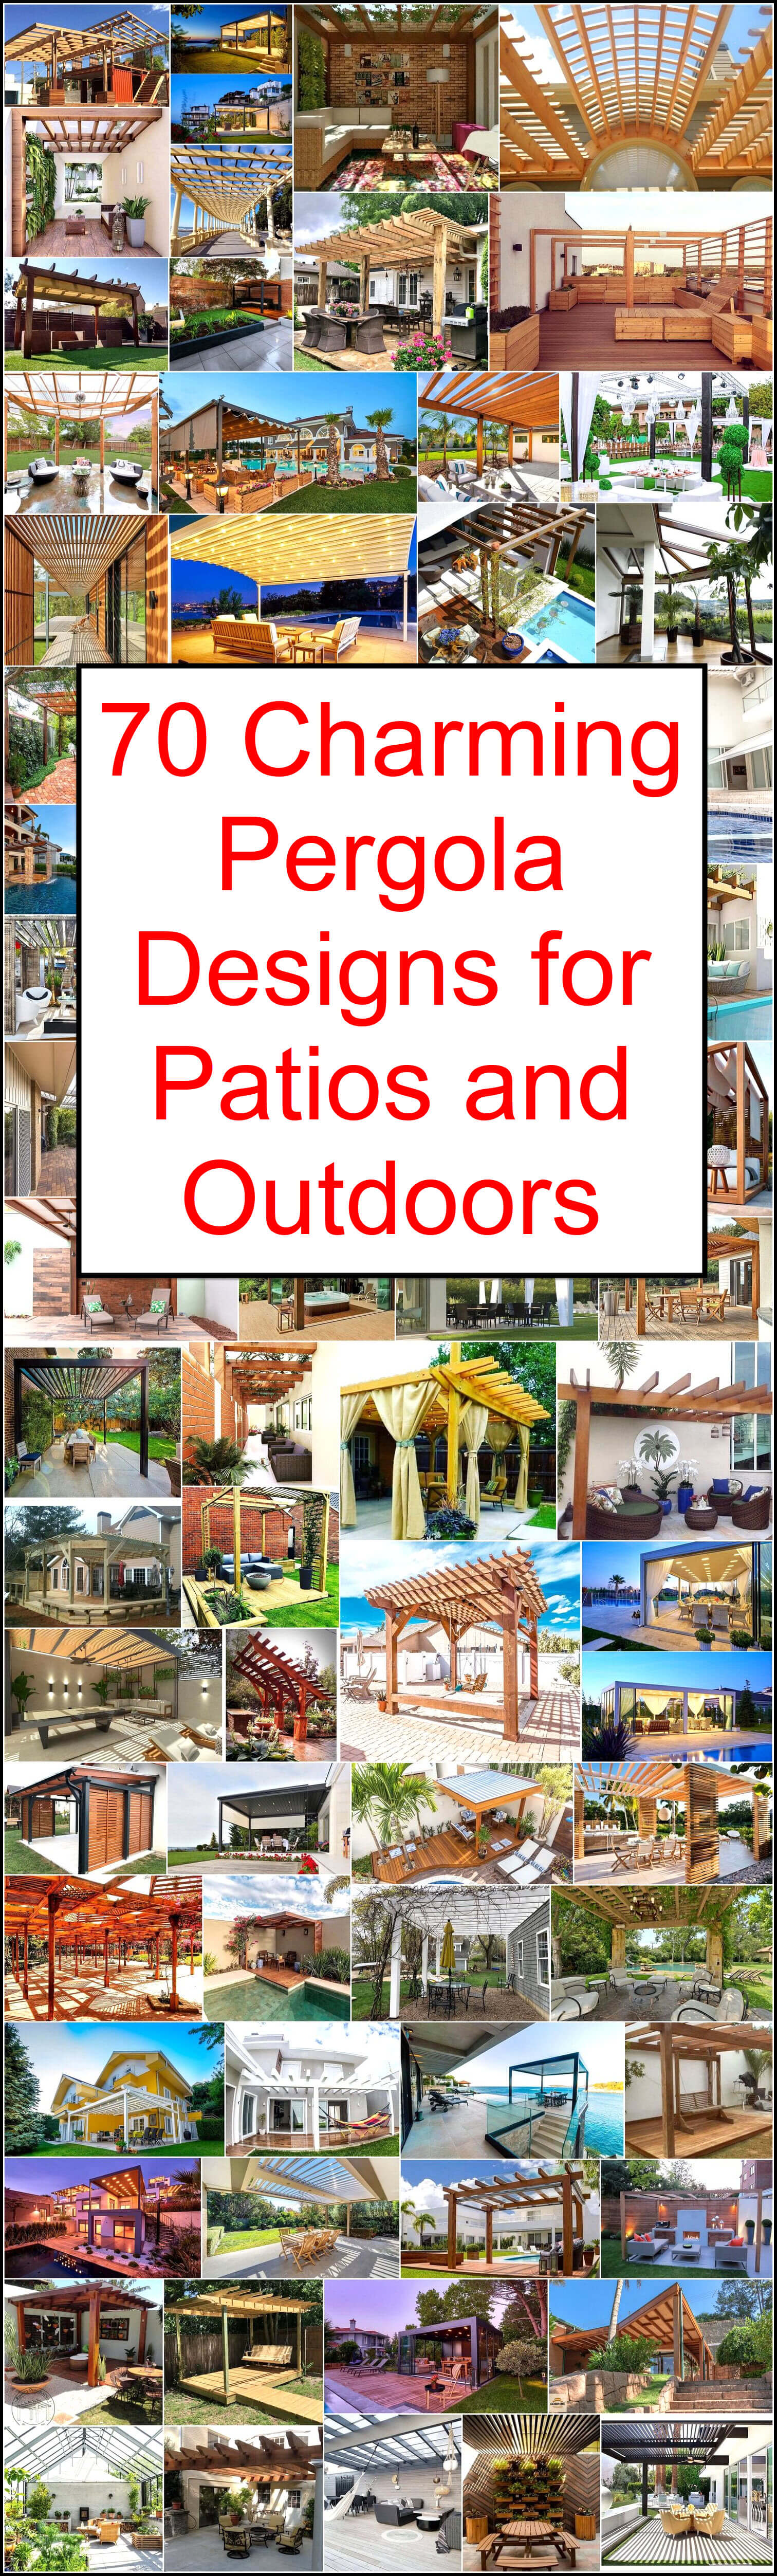 Charming Pergola Designs for Patios and Outdoors